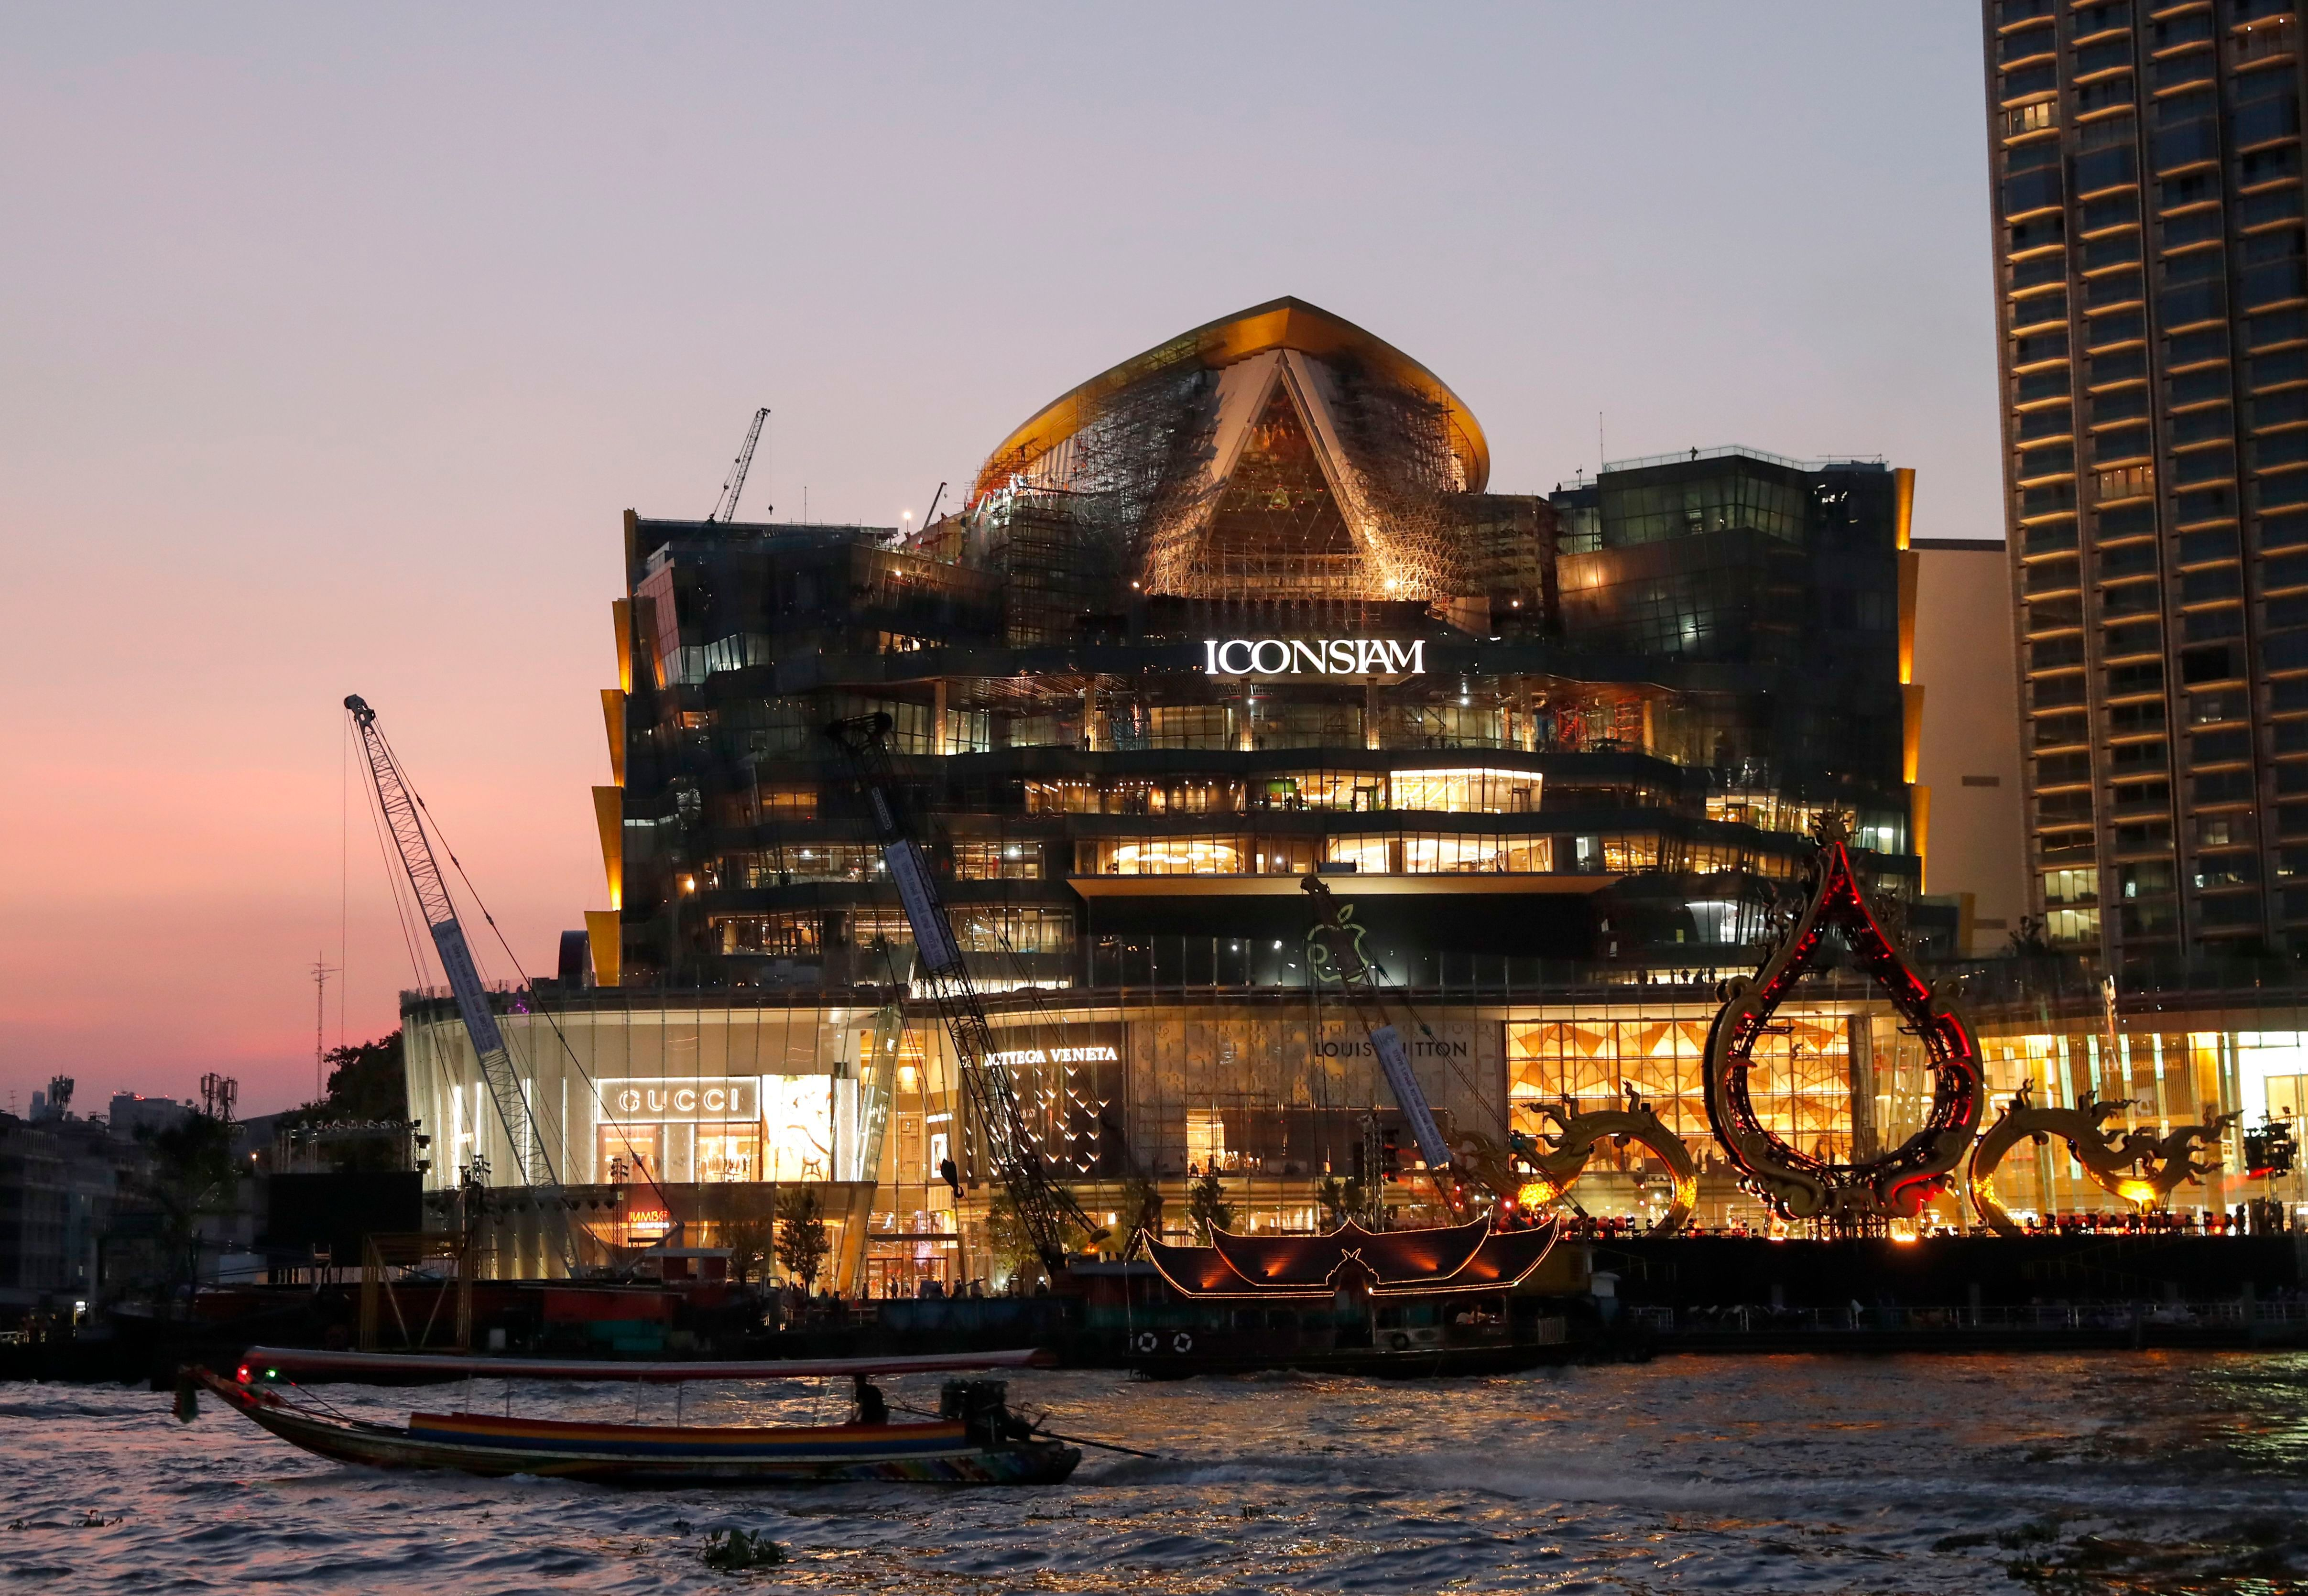 IconSiam, which sits on the banks of Chao Phraya River in Bangkok.